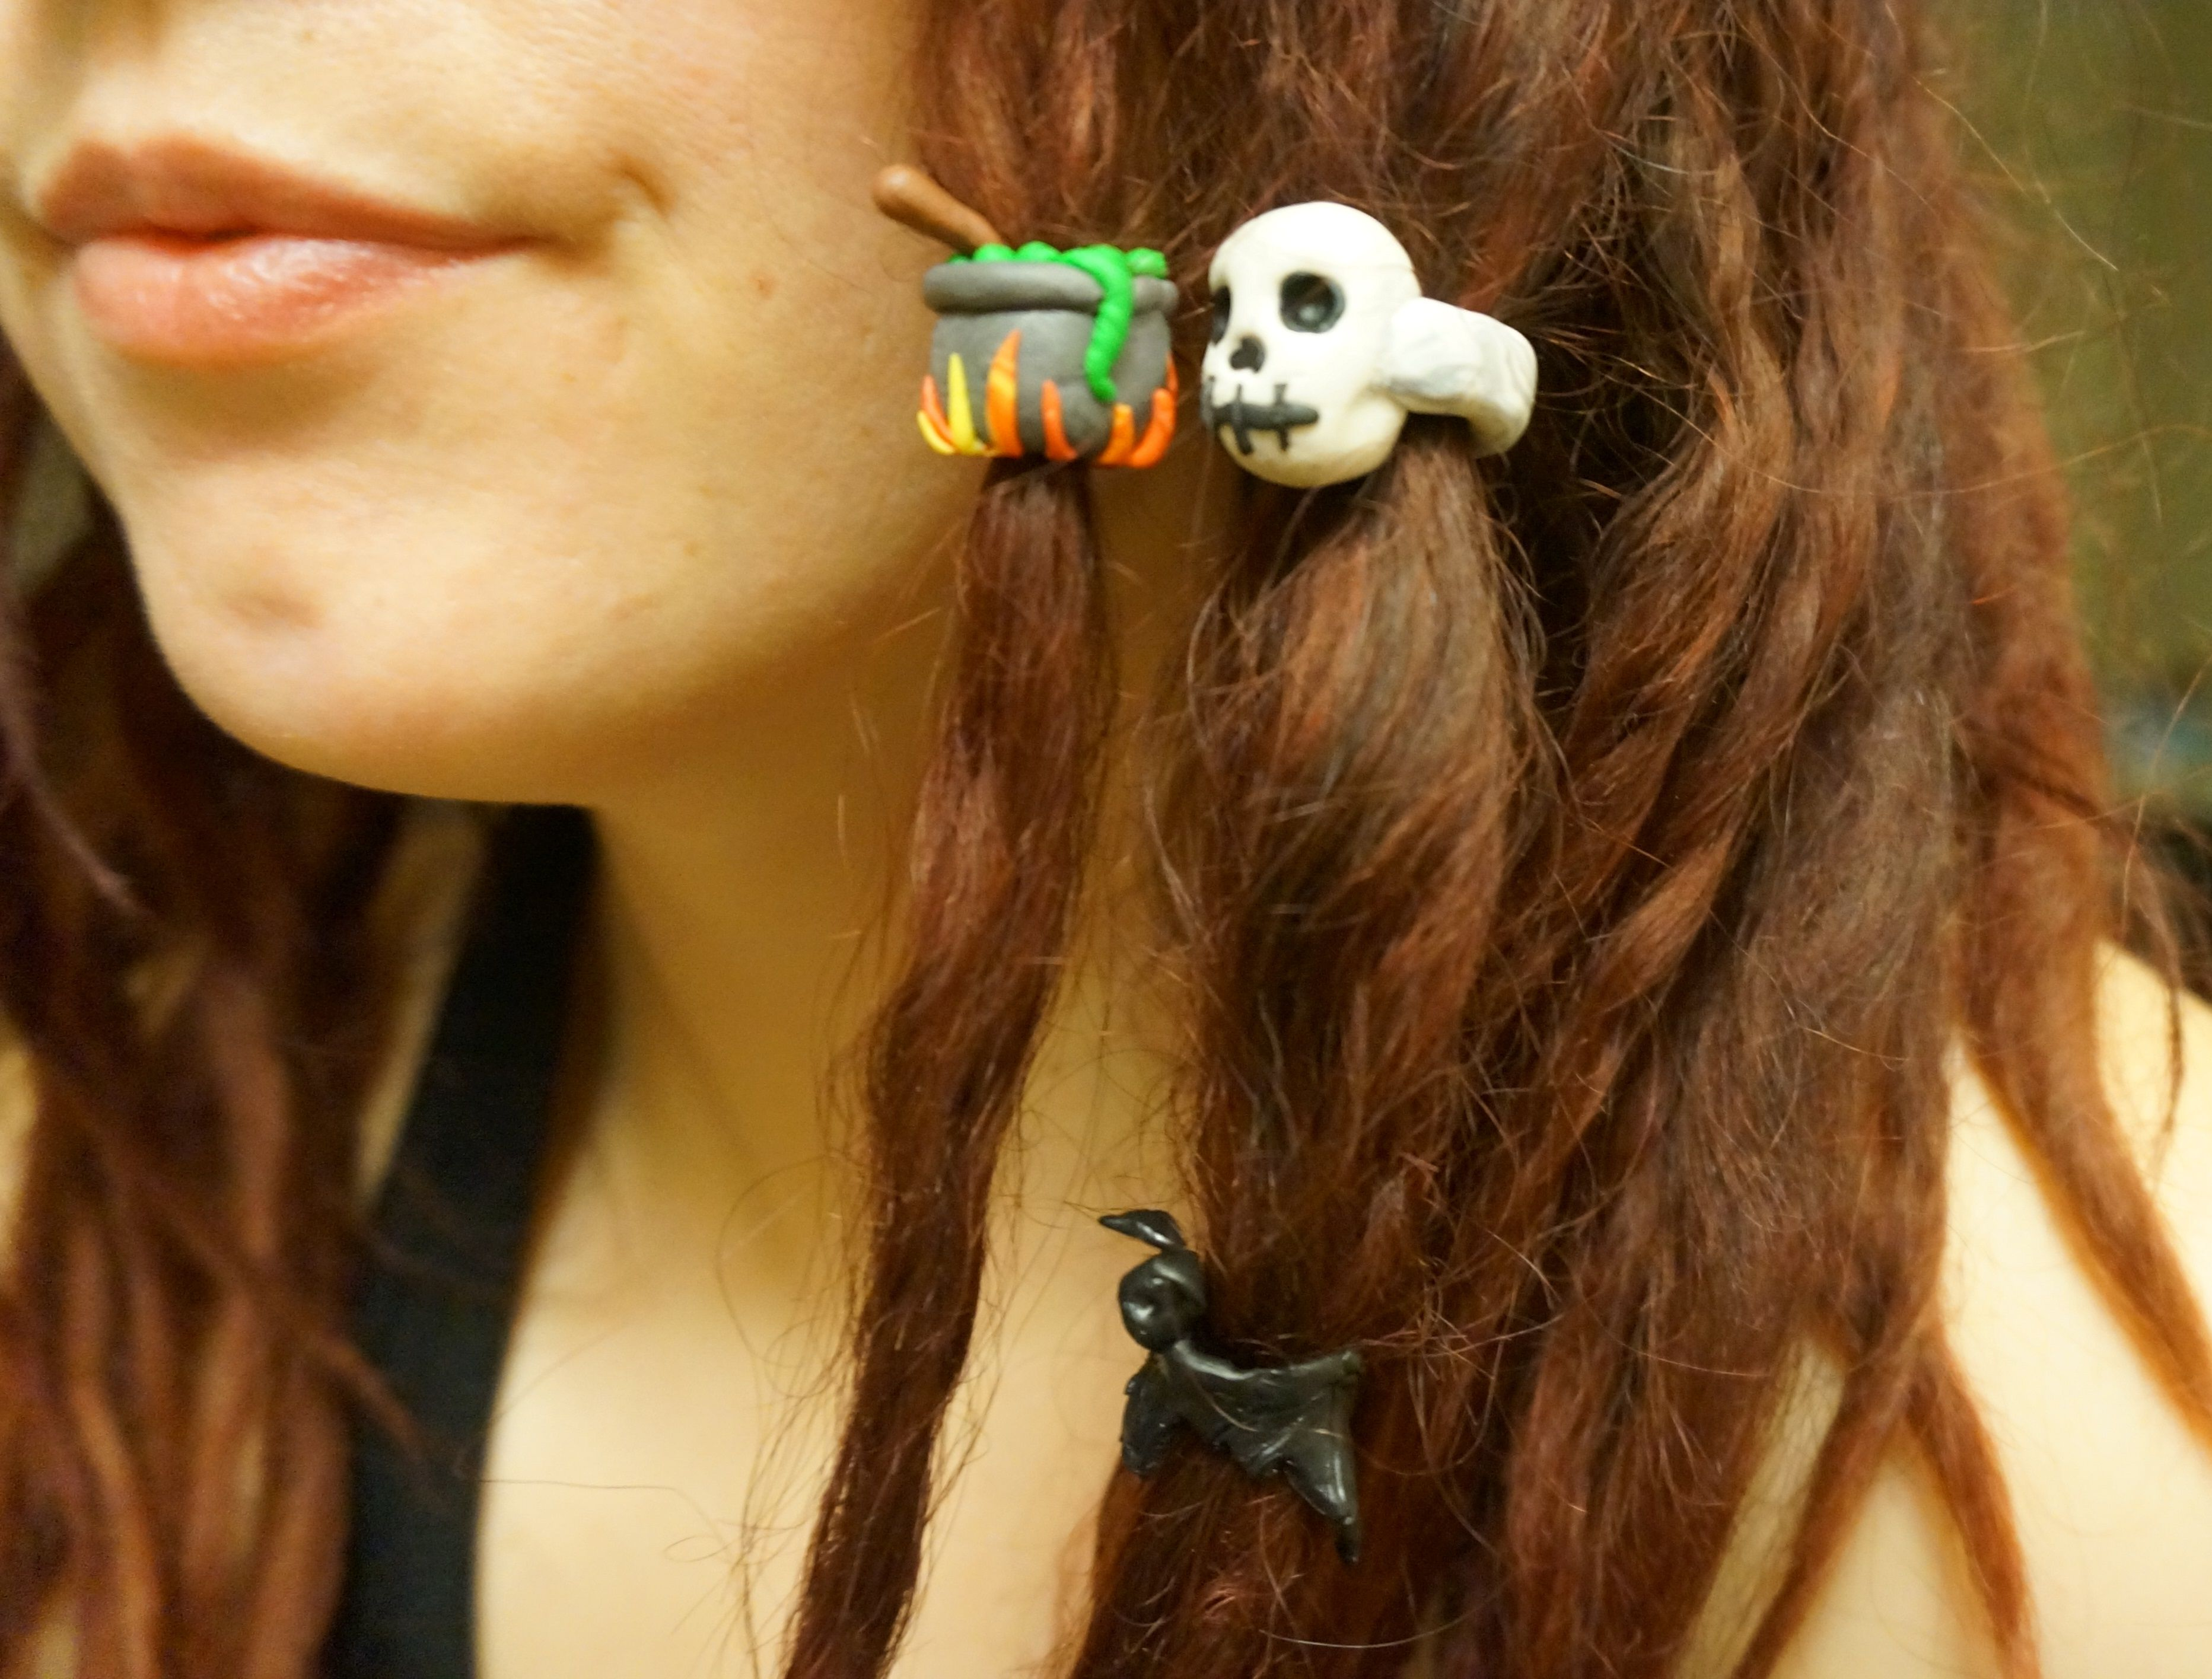 fimo clay dread beads witch's cauldron skull and bat  #skull #dreads #dreadlocks #witch #halloween